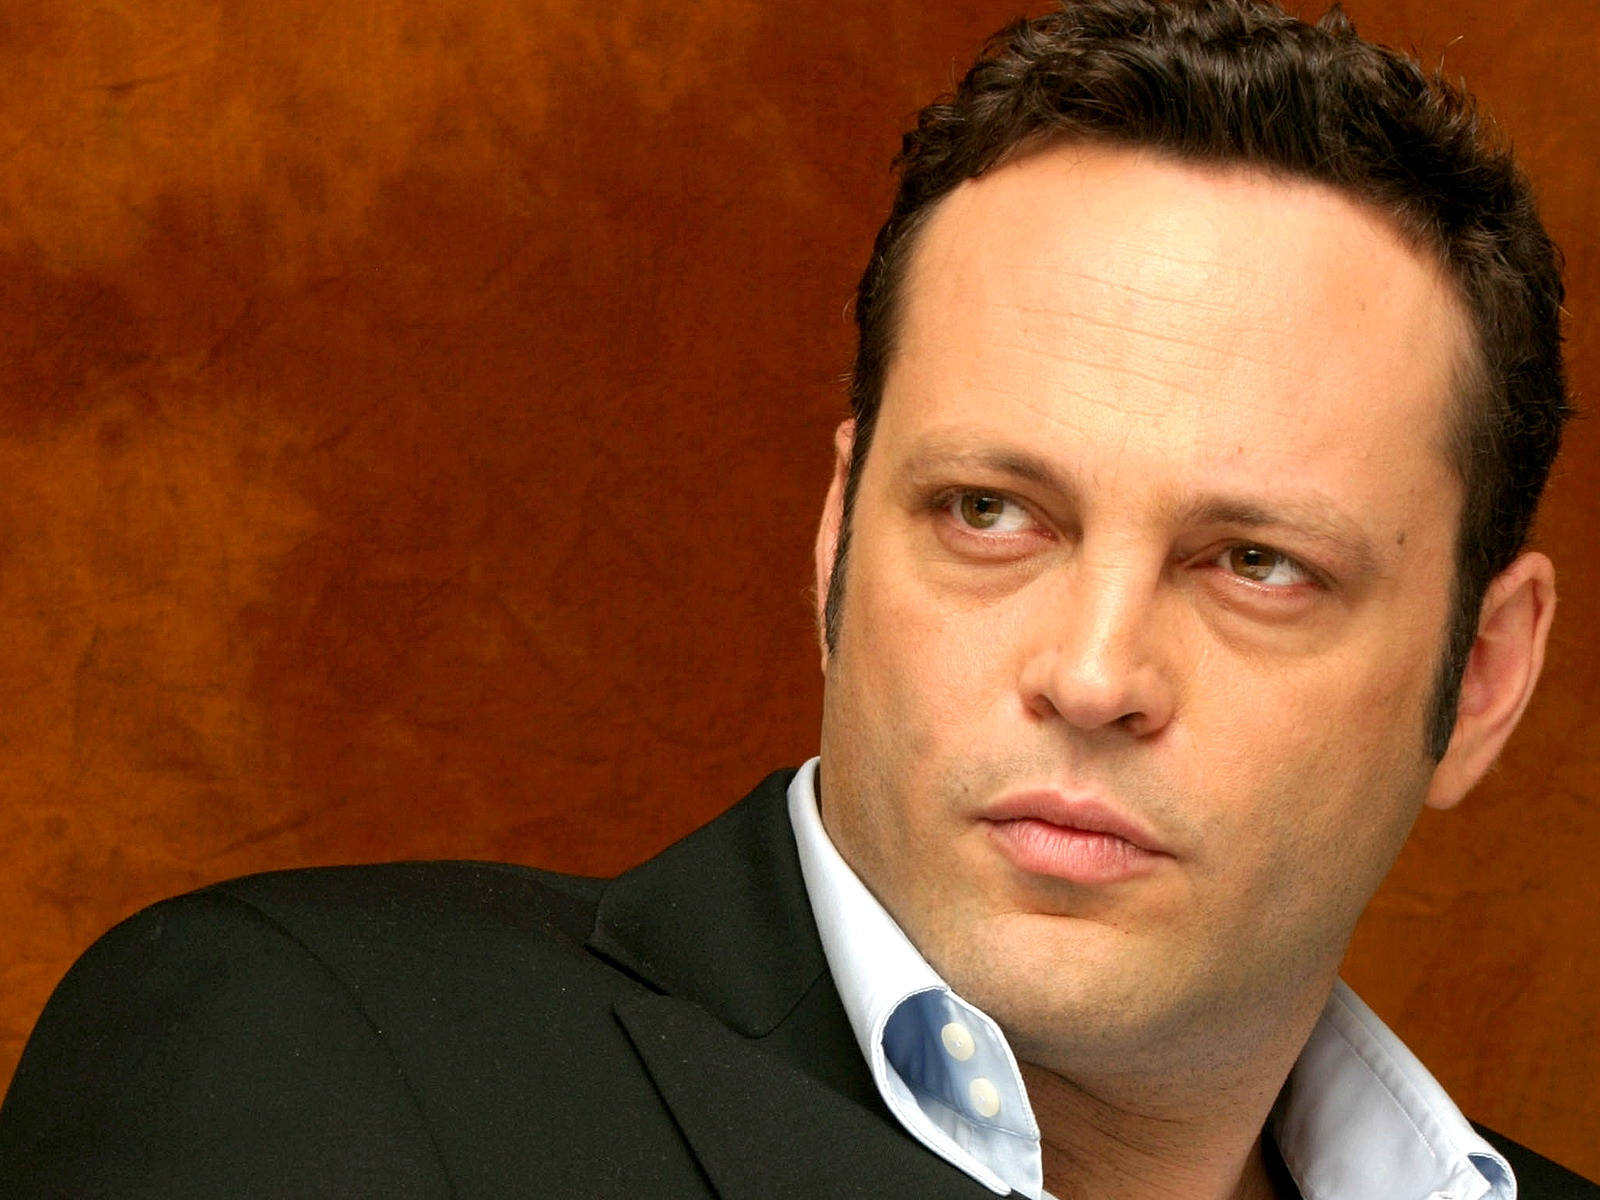 SANTA MONICA, CA - MAY 19: Actor Vince Vaughn talks at the Shutters Hotel on May 19, 2006 in Santa Monica, California. (Photo by Piyal Hosain/Fotos International/Getty Images) *** Local Caption *** Vince Vaughn